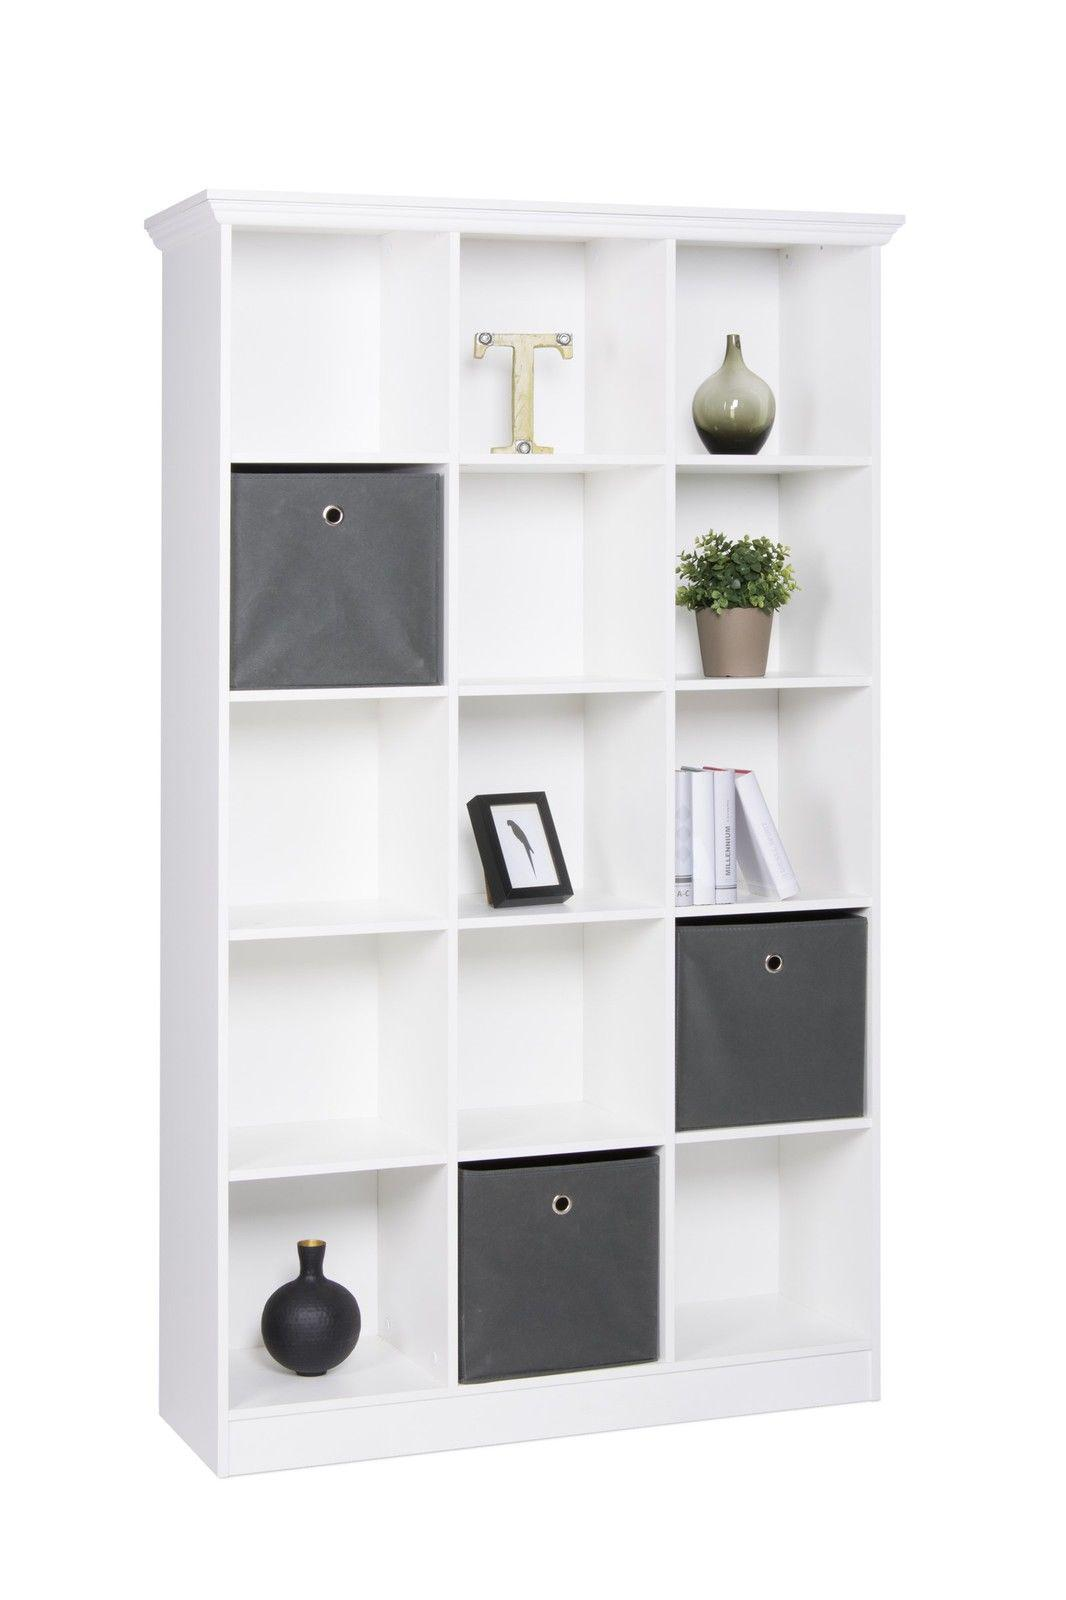 "regal garderobe "" home"" 110x185x38 cm in weiss landhausstil - kaufen"